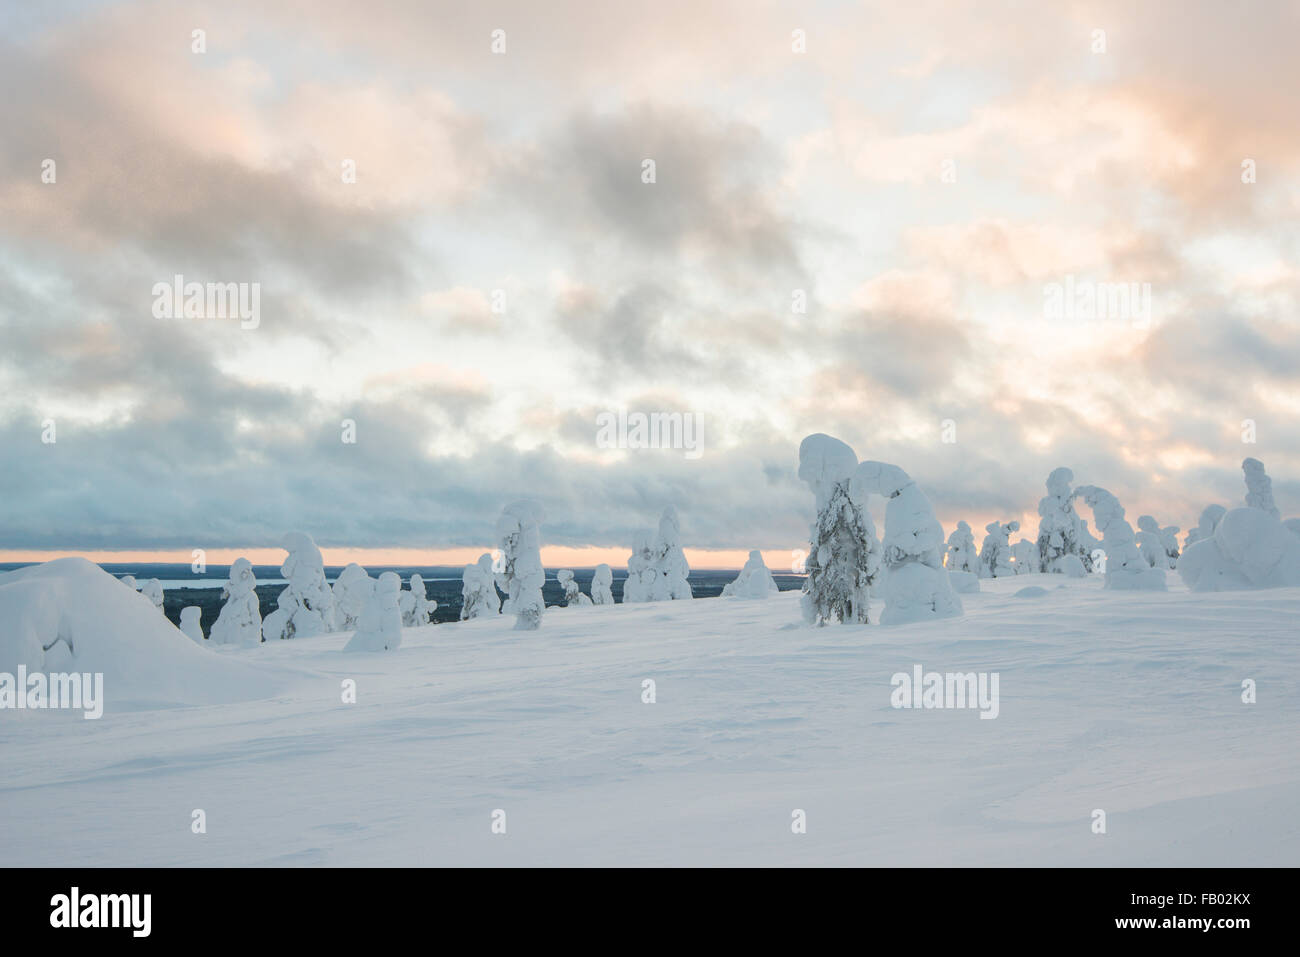 Snow-covered spruces, fjell in winter, Riisitunturi National Park, Posio, Lapland, Finland - Stock Image